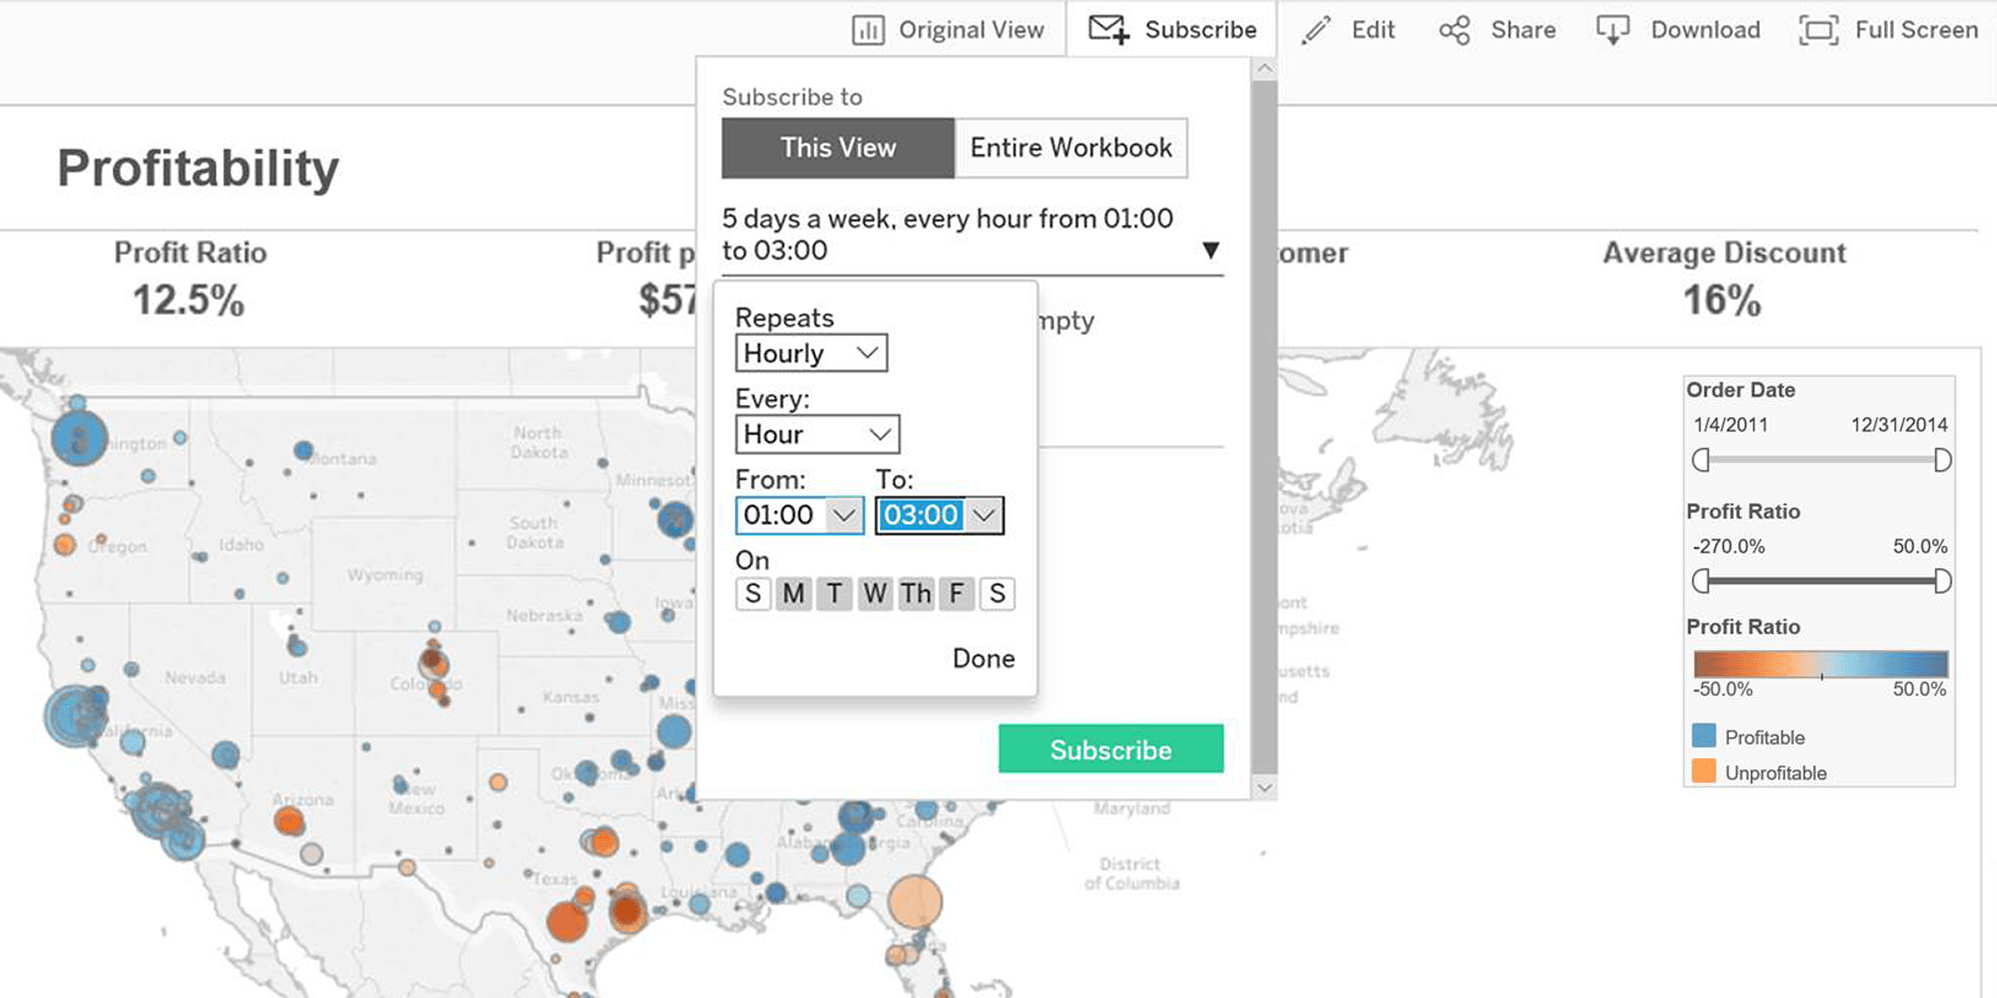 tableau viewer screenshot displaying customizable subscriptions feature